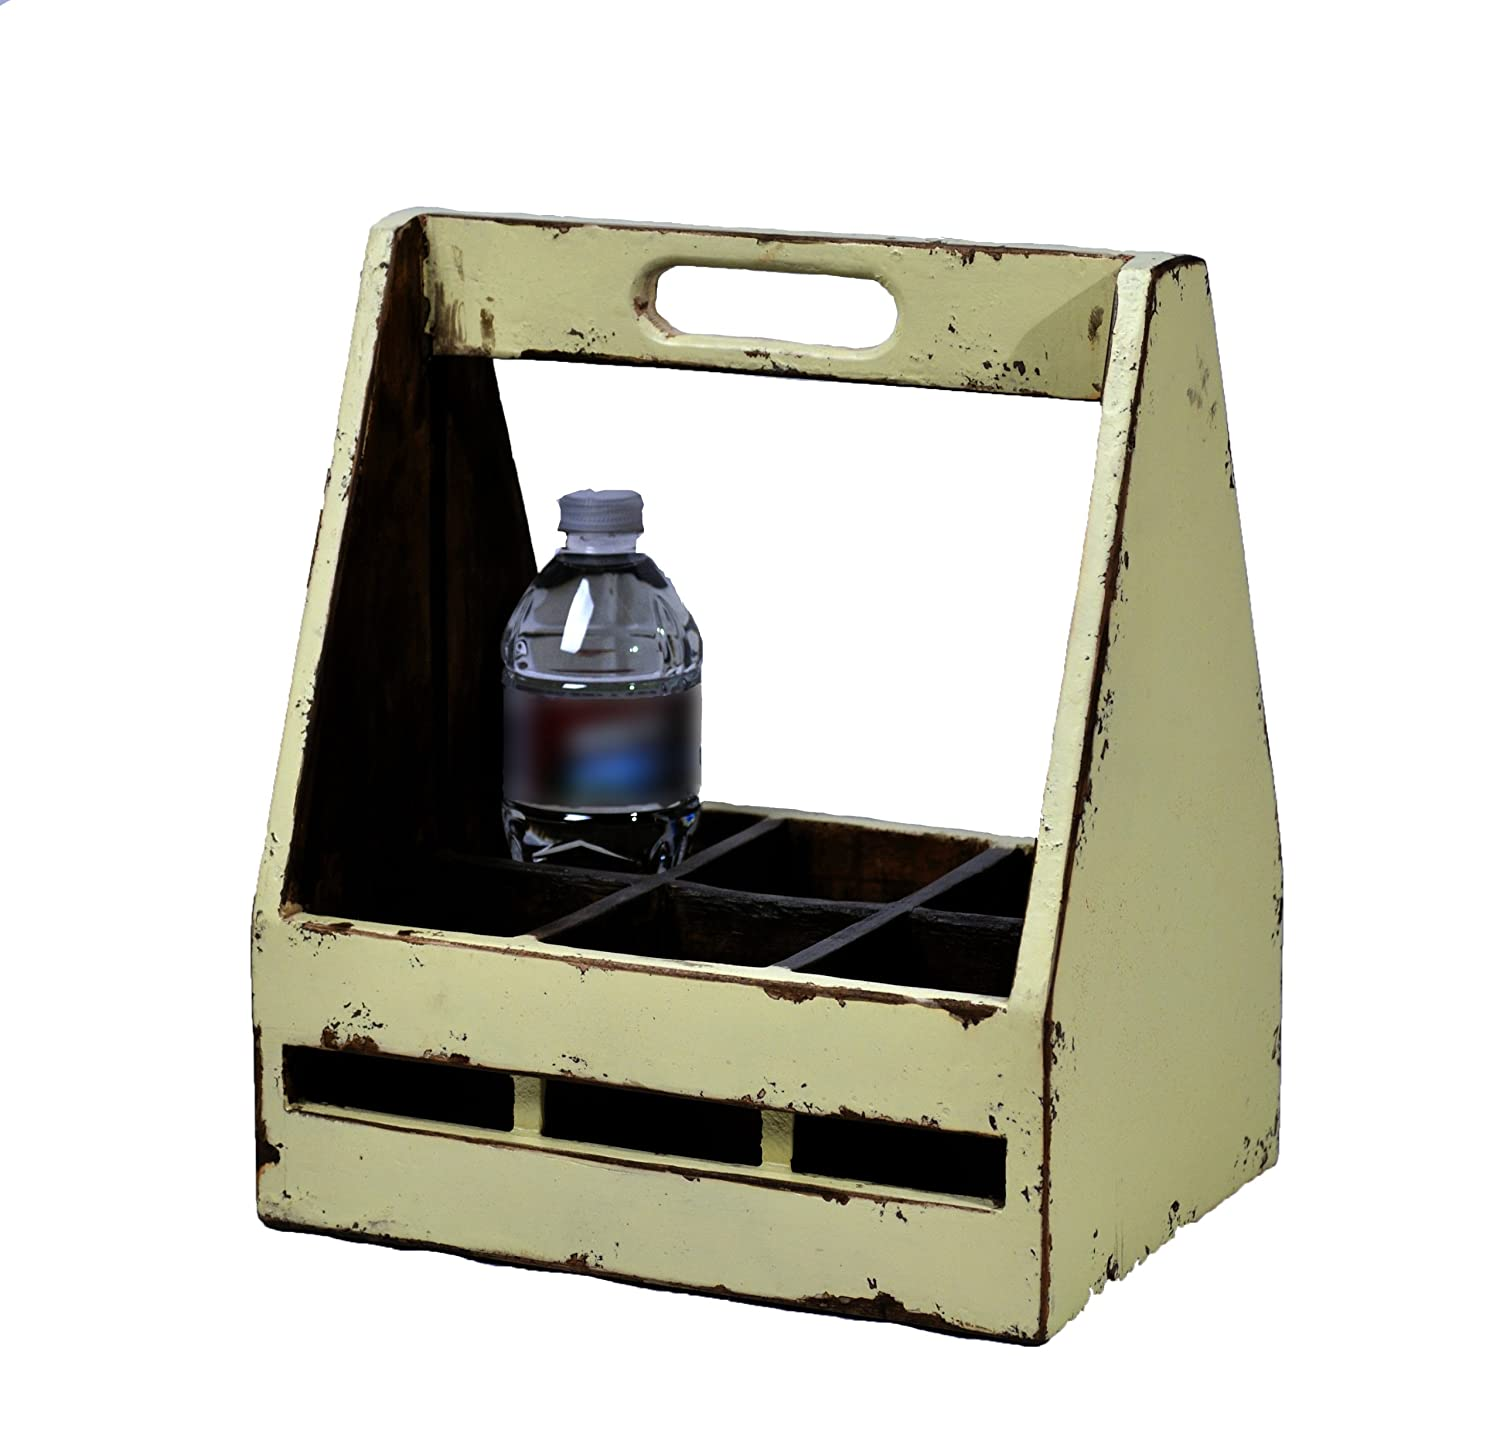 Amazon.com: Antique Revival Small Wooden Milk Crate With Handle, Blue  Finish: Kitchen U0026 Dining